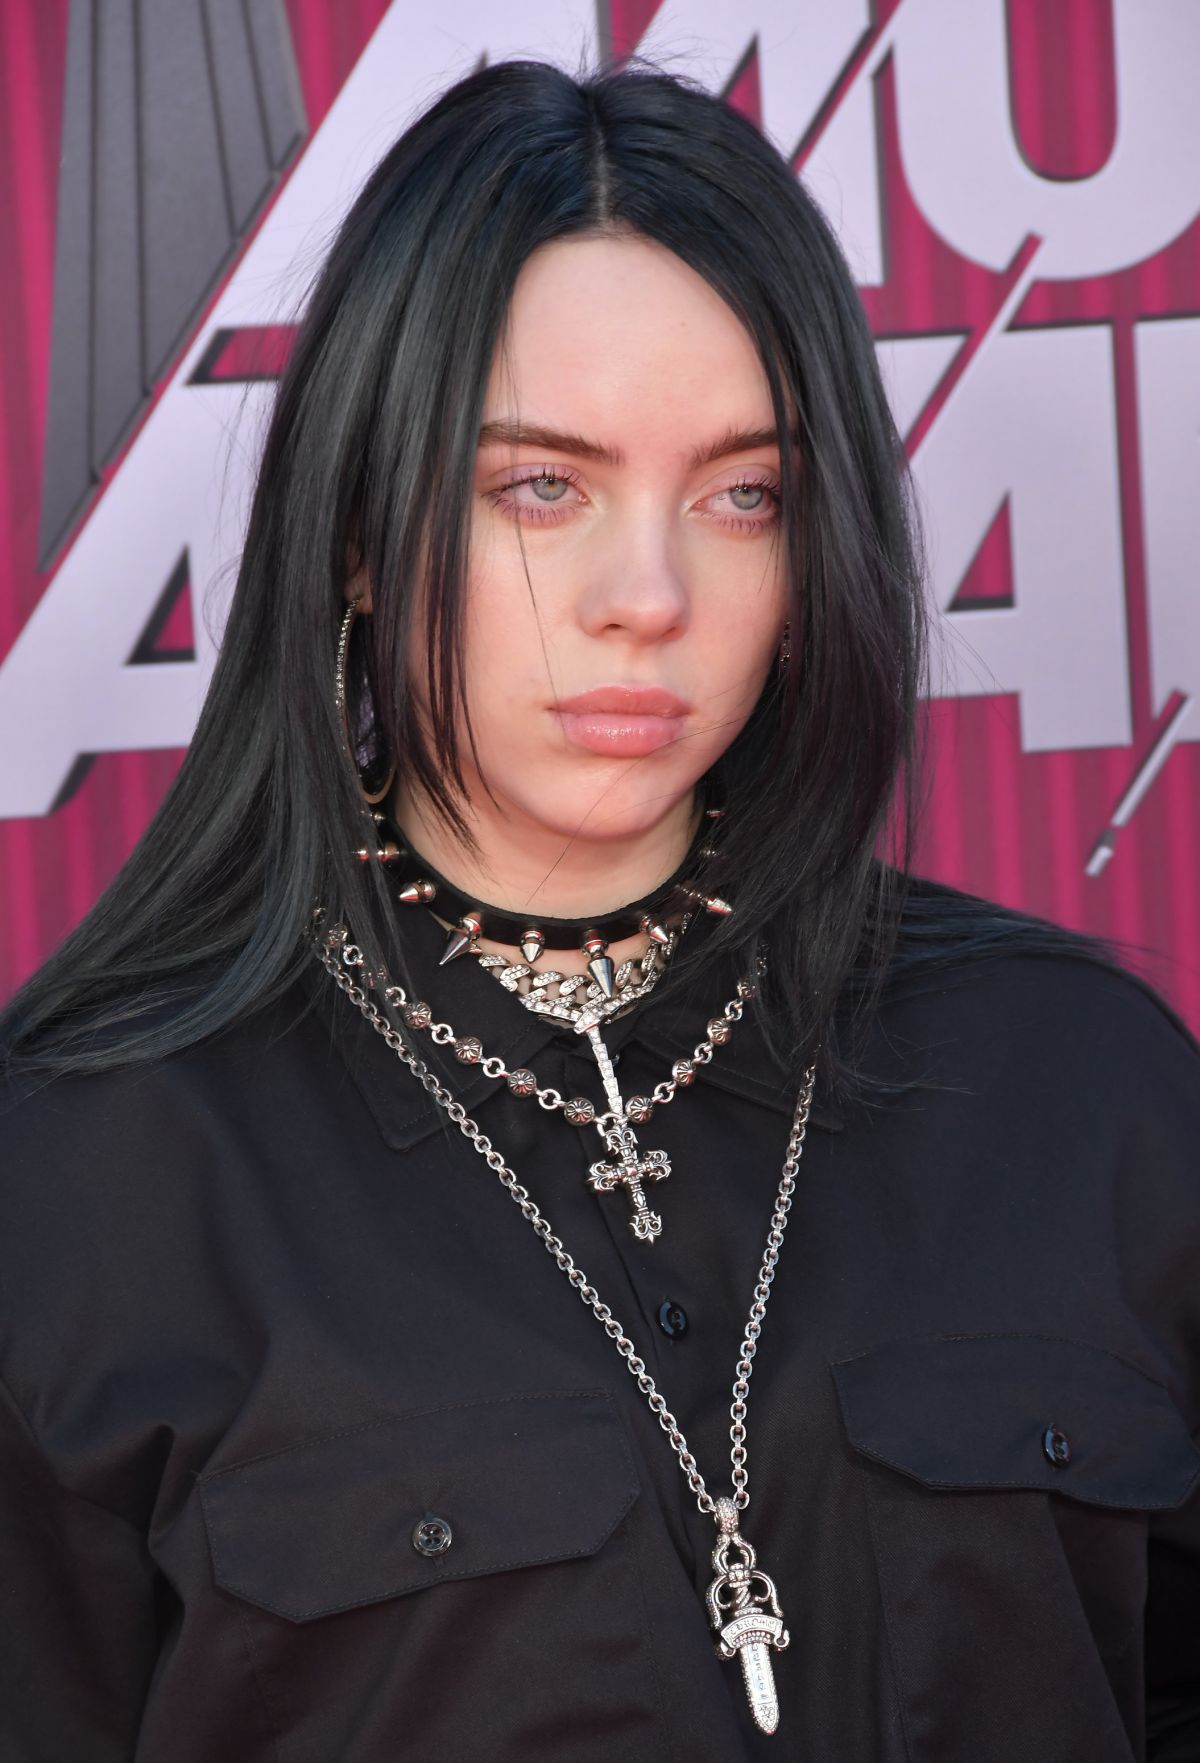 All The Girls Standing In The Line For The Bathroom: BILLIE EILISH At Iheartradio Music Awards 2019 In Los